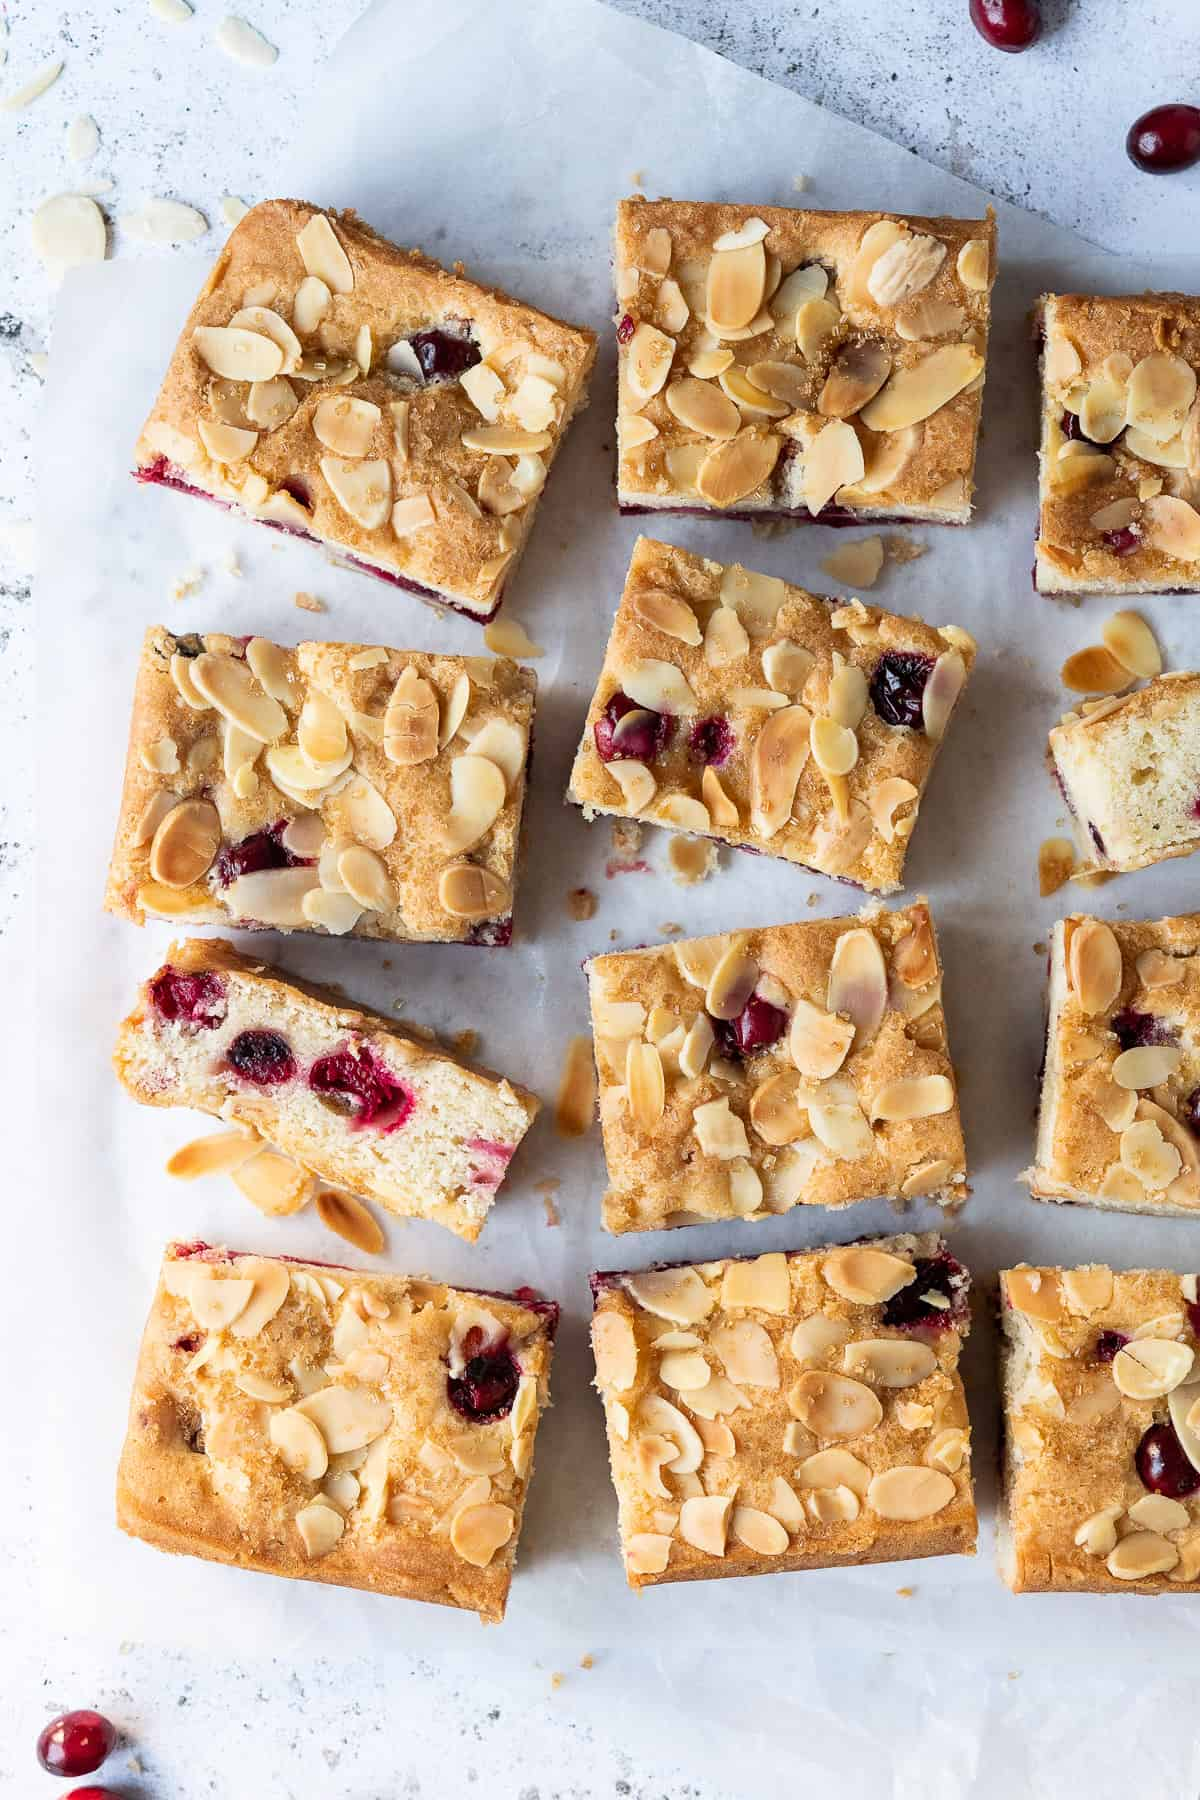 Squares of cranberry almond cake on a sheet of white baking parchment.